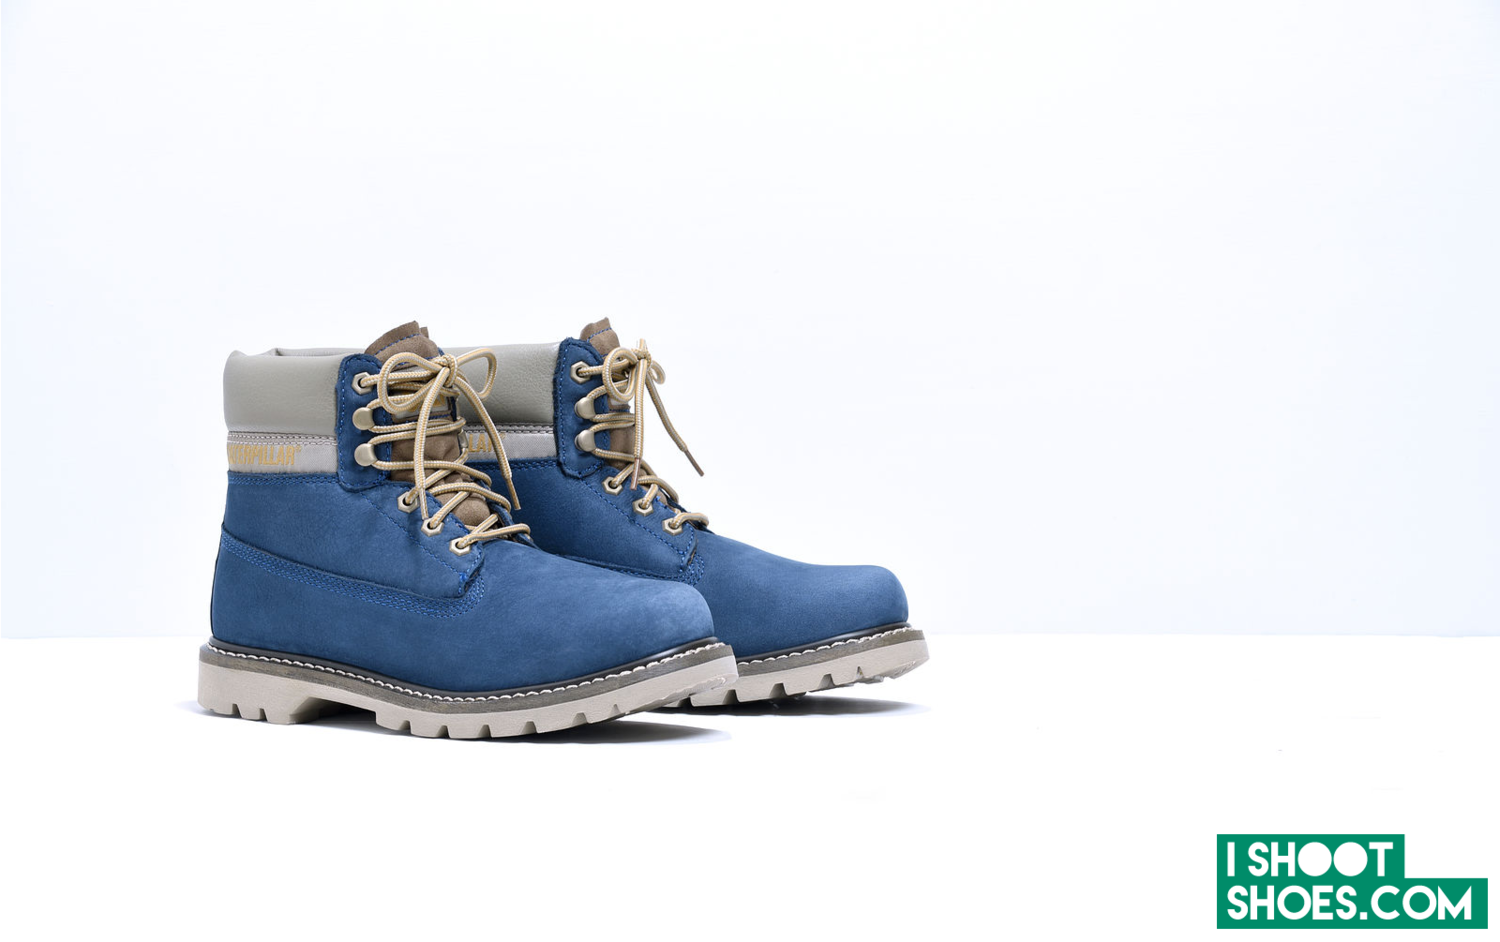 Blue shade shoes by Will Fahy